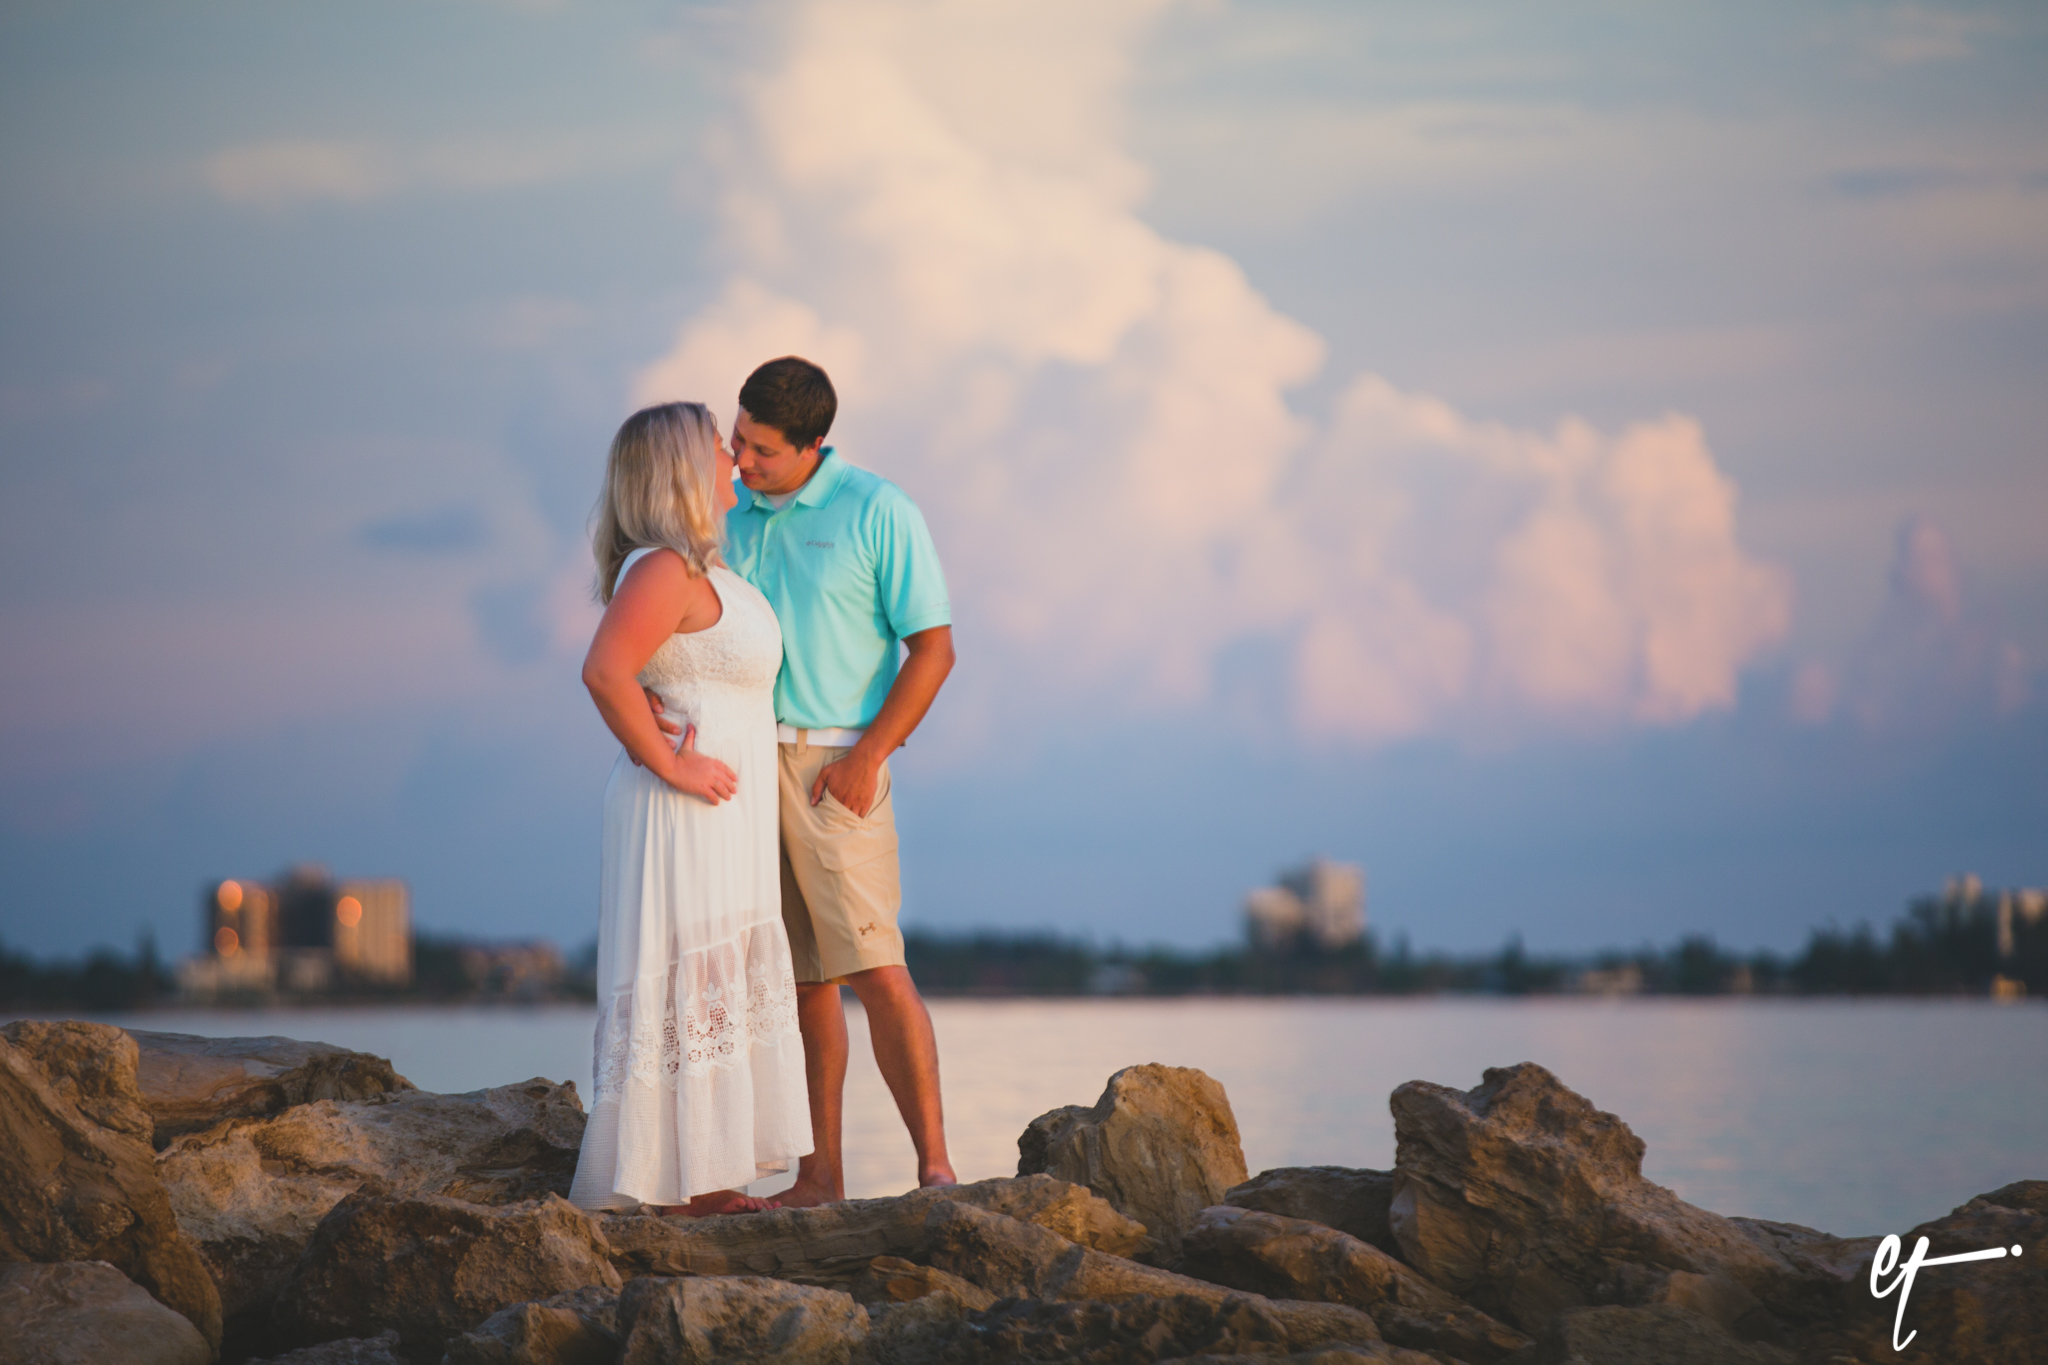 Surprise_Proposal_Sarasota_Lido_Key_Photography_Florida-31.jpg